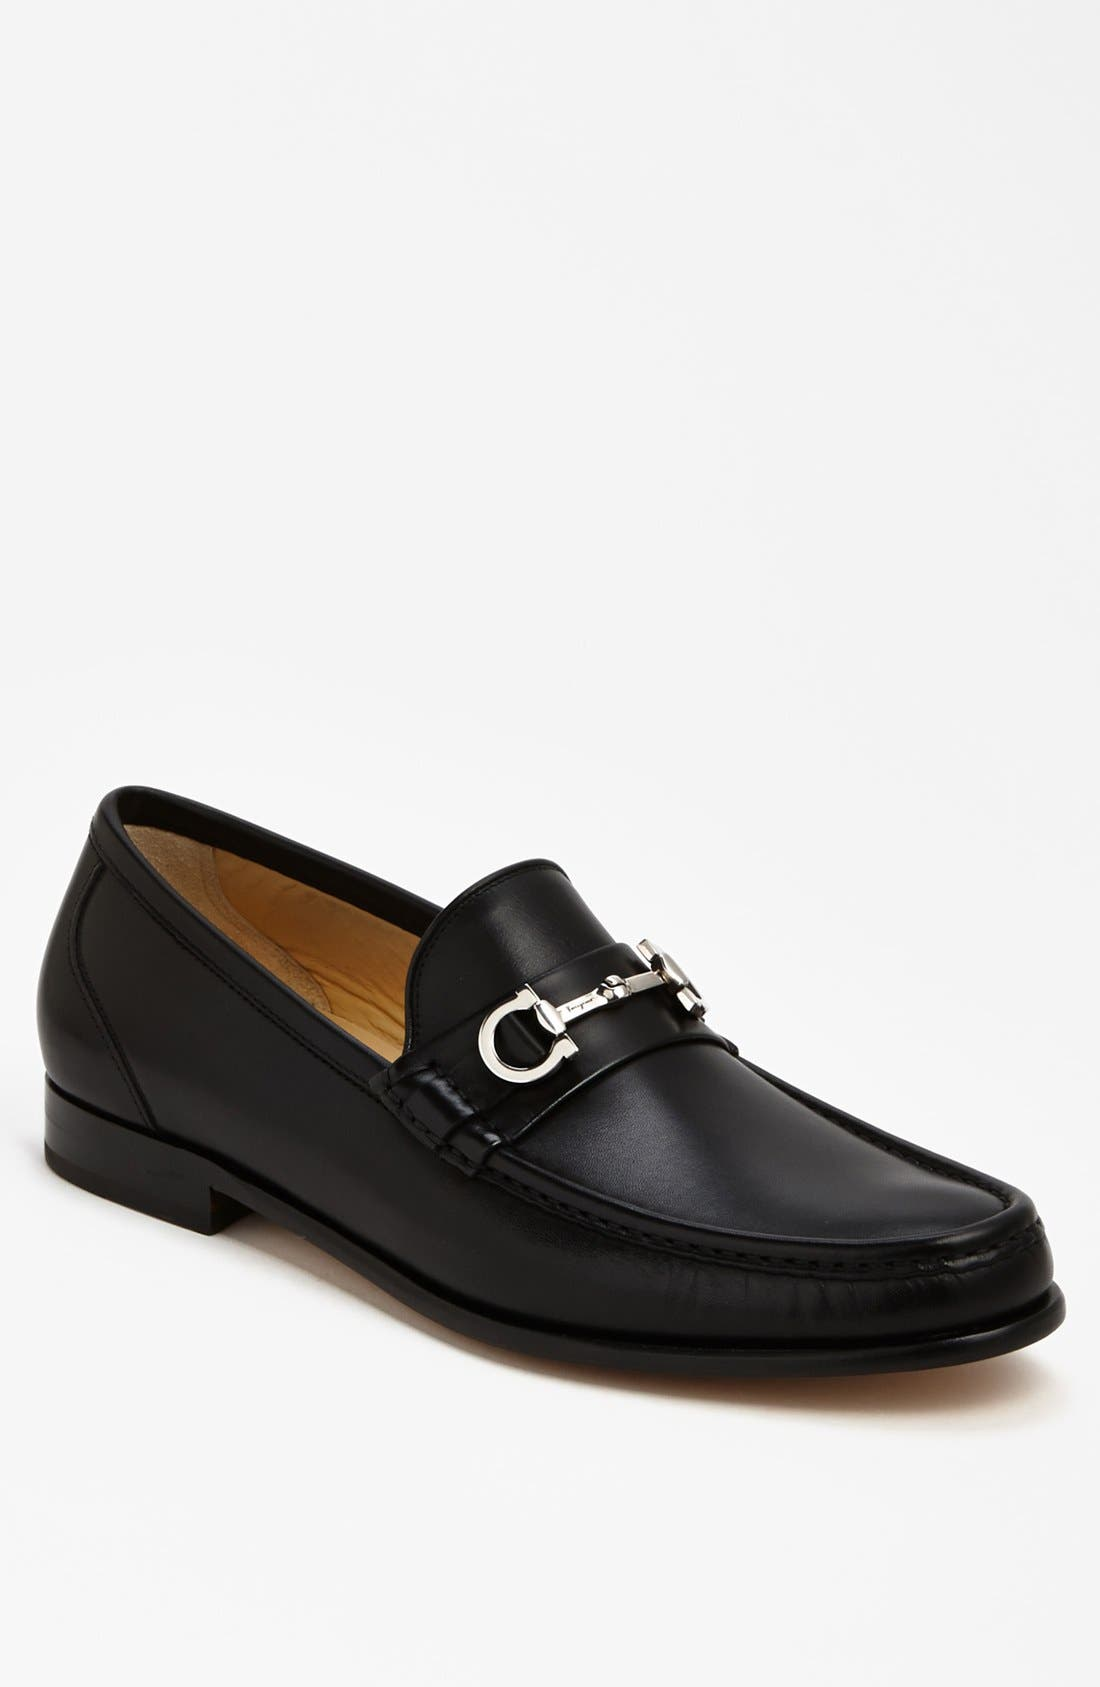 'Giostra' Bit Loafer,                             Main thumbnail 1, color,                             001